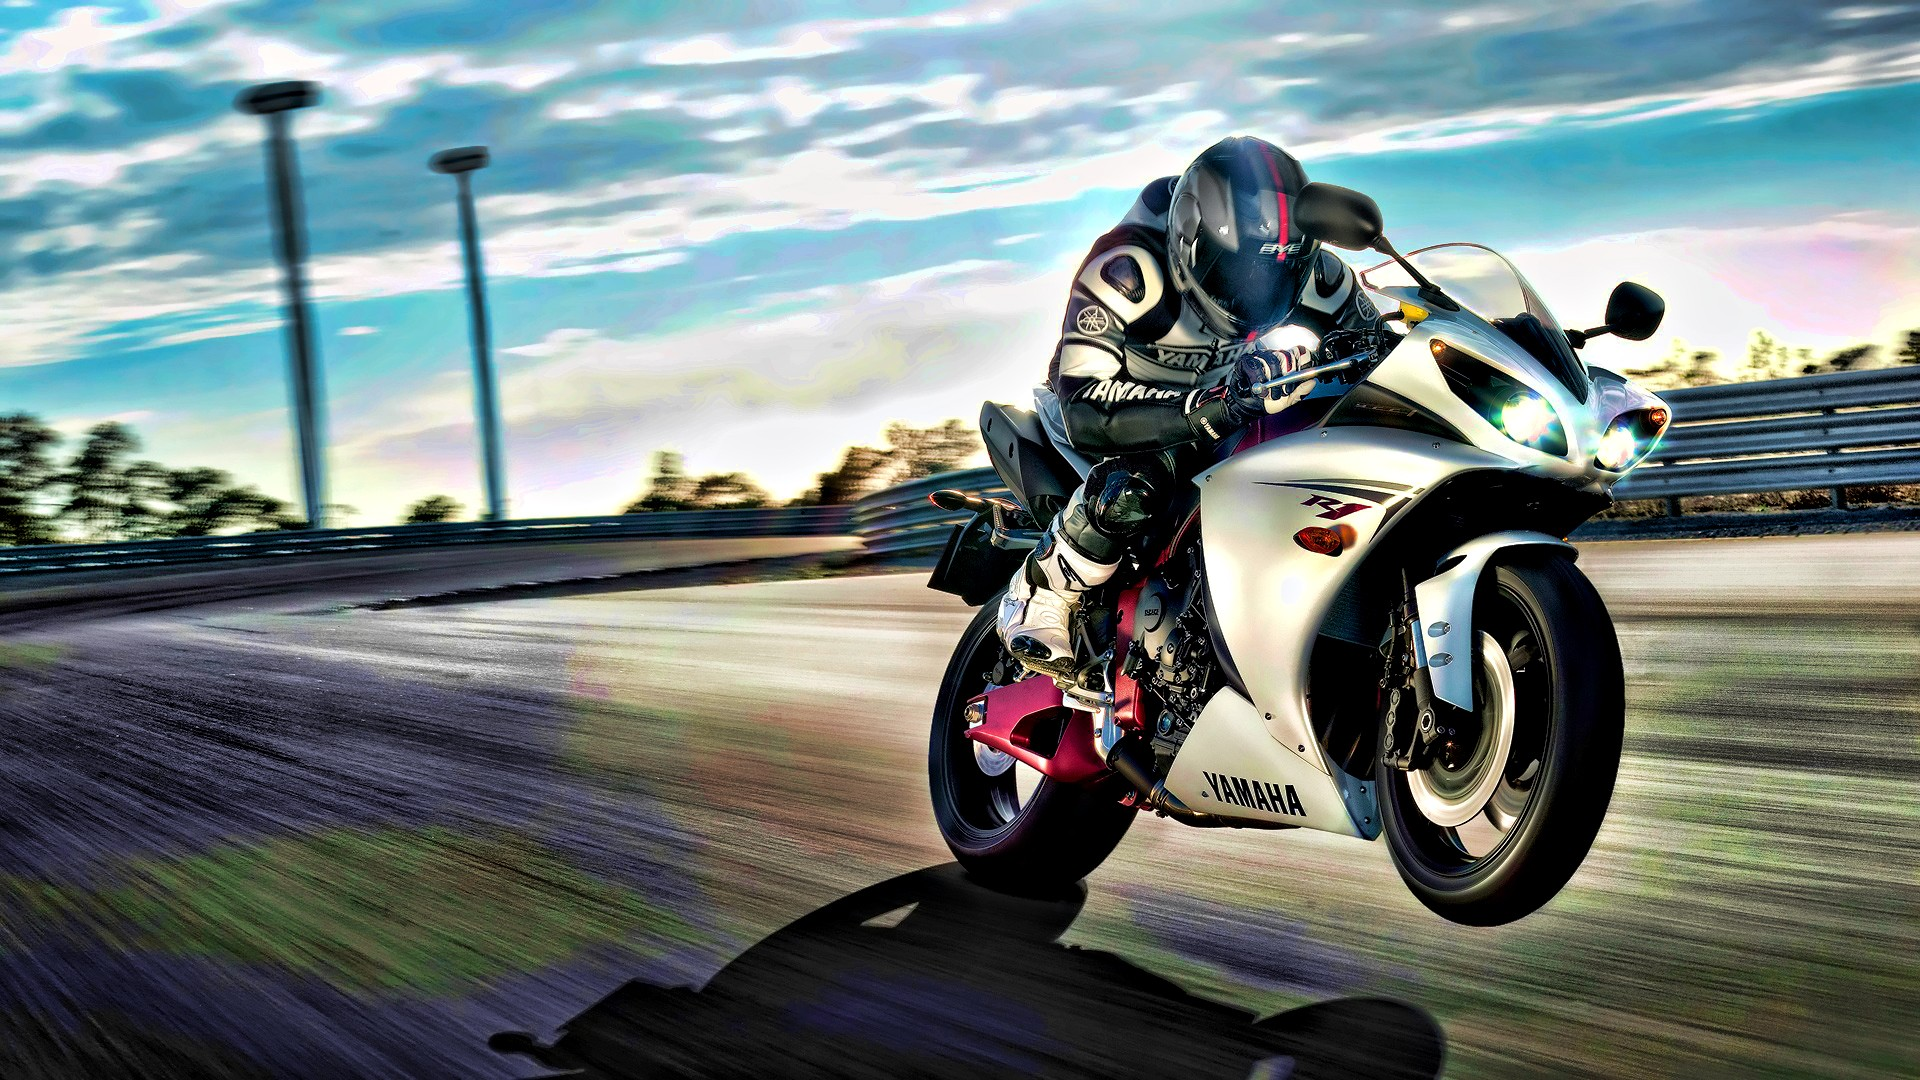 Biker on sport bike Yamaha R1